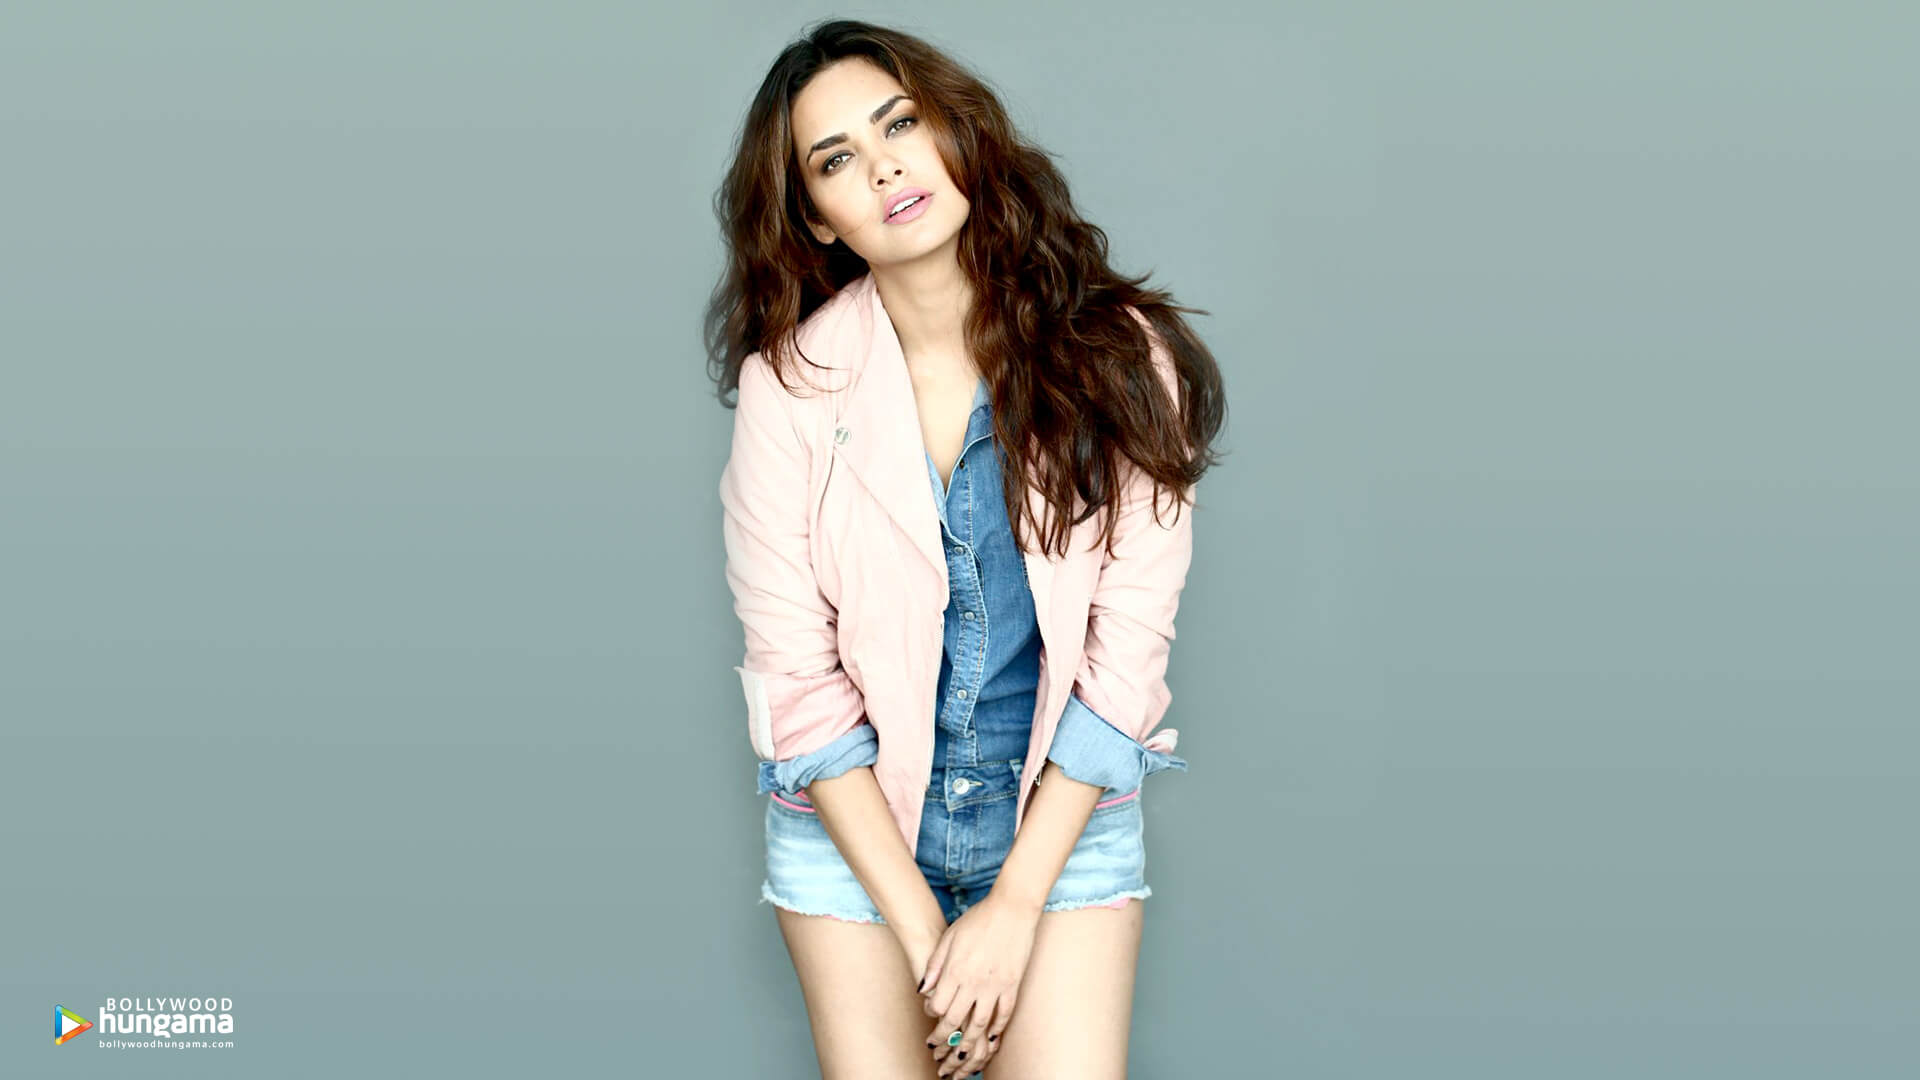 Esha Gupta Images(photos), Age, Height, Net Worth, Date Of Birth, Family, Biography, Son, Marriage, Boyfriend, Education, Awards, Hairstyle, Instagram, Twitter, Facebook, Wiki, Imdb (11)